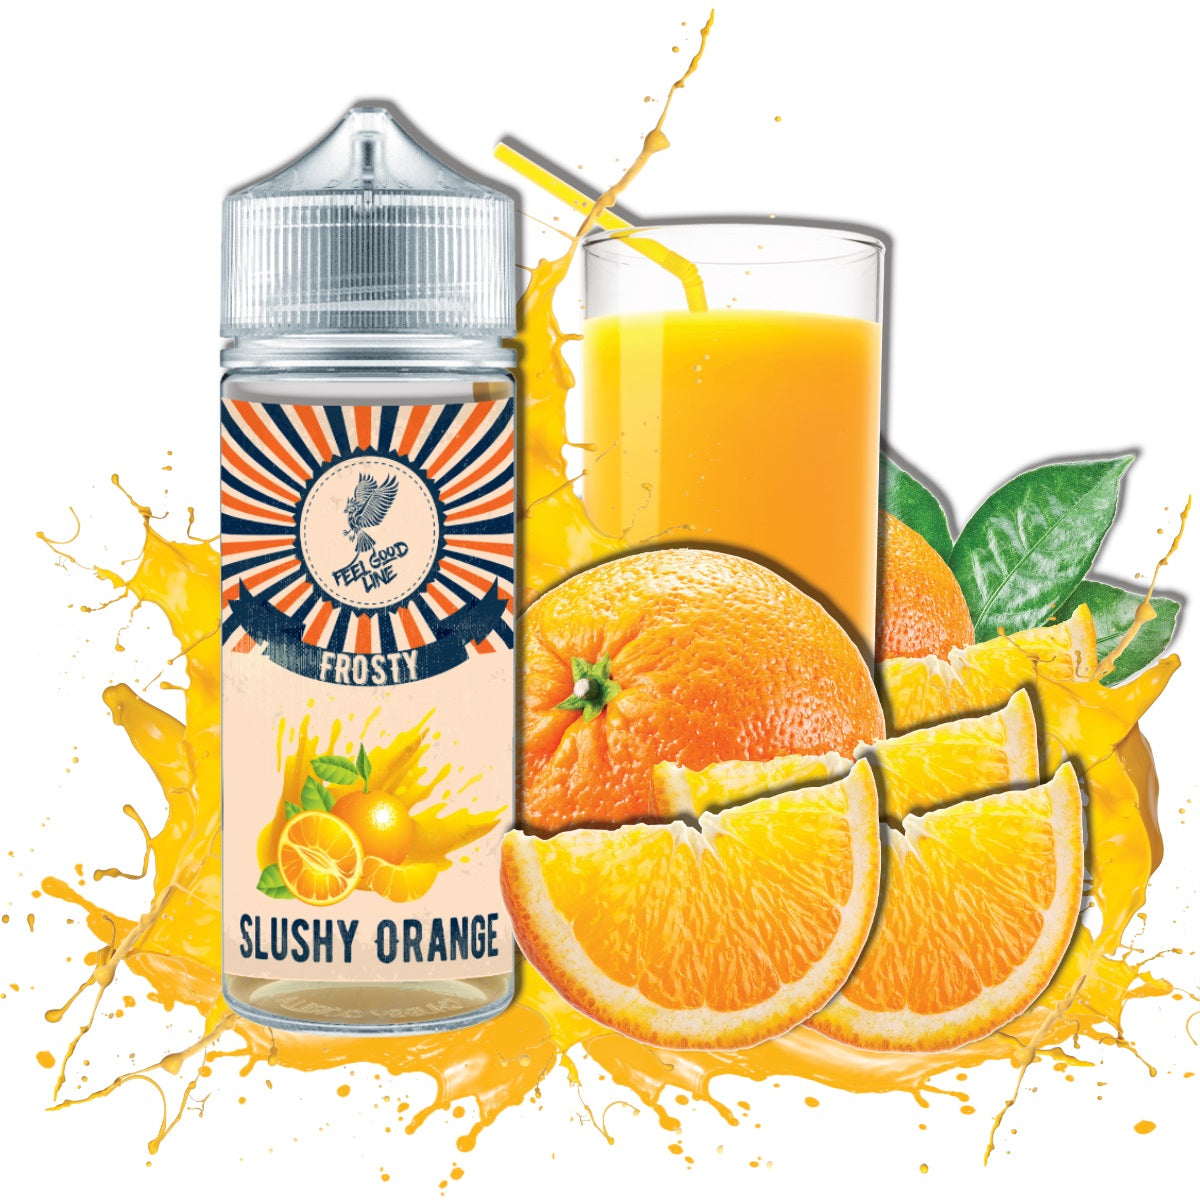 SLUSHY ORANGE Long Fill Aroma -  Vape Feeling